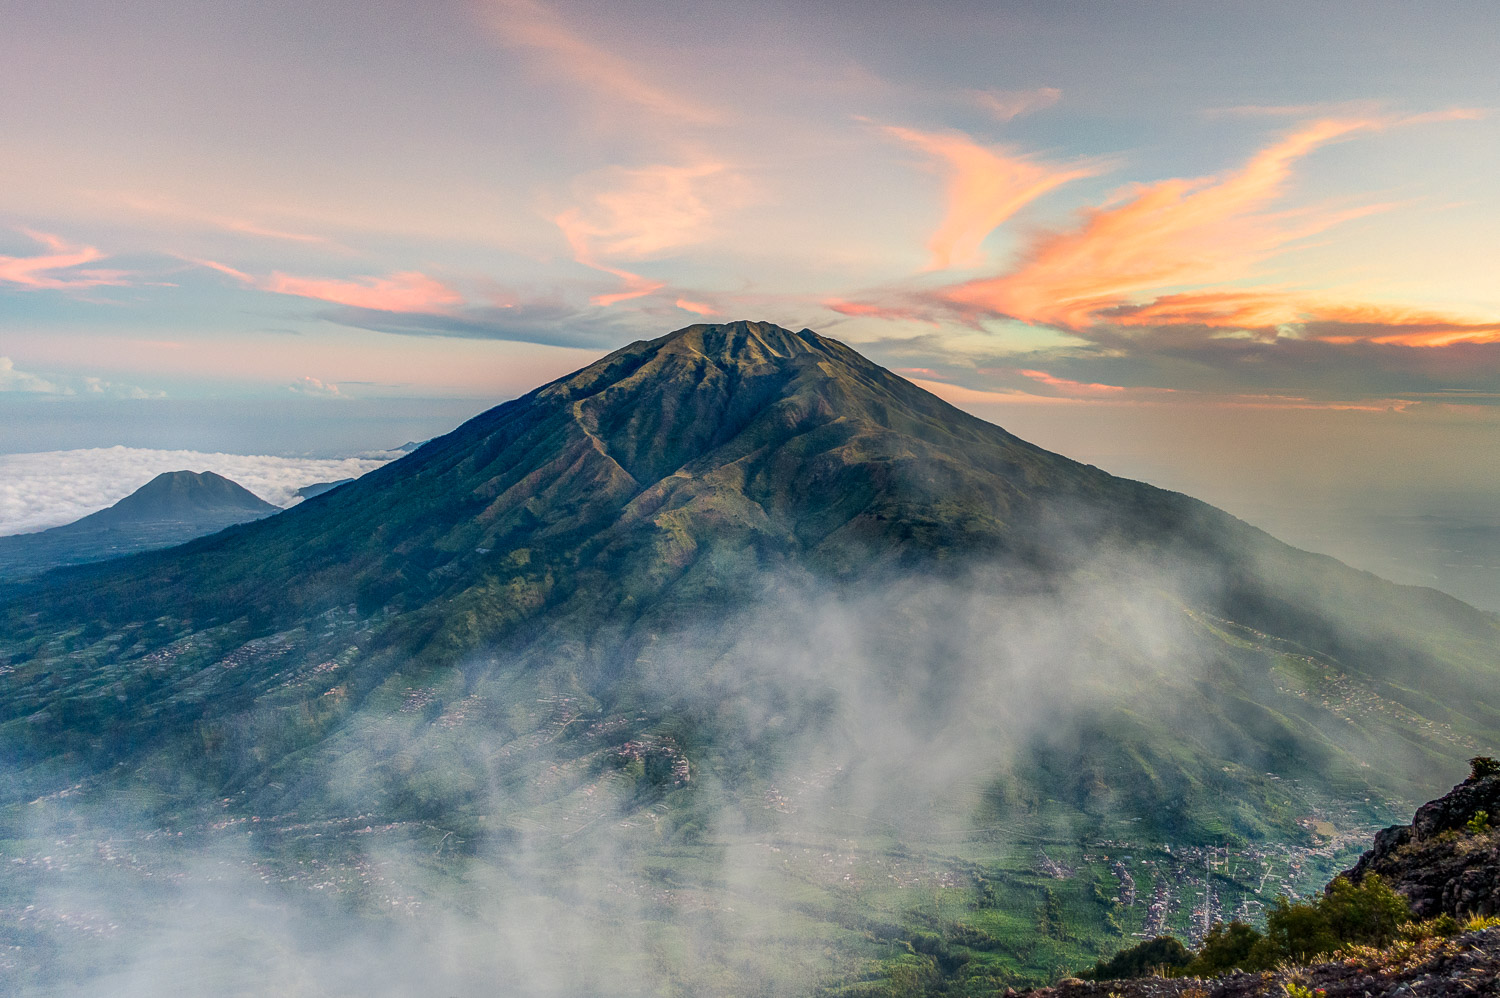 Mount Merbabu at sunrise; the starting point Selo can be seen on the bottom right